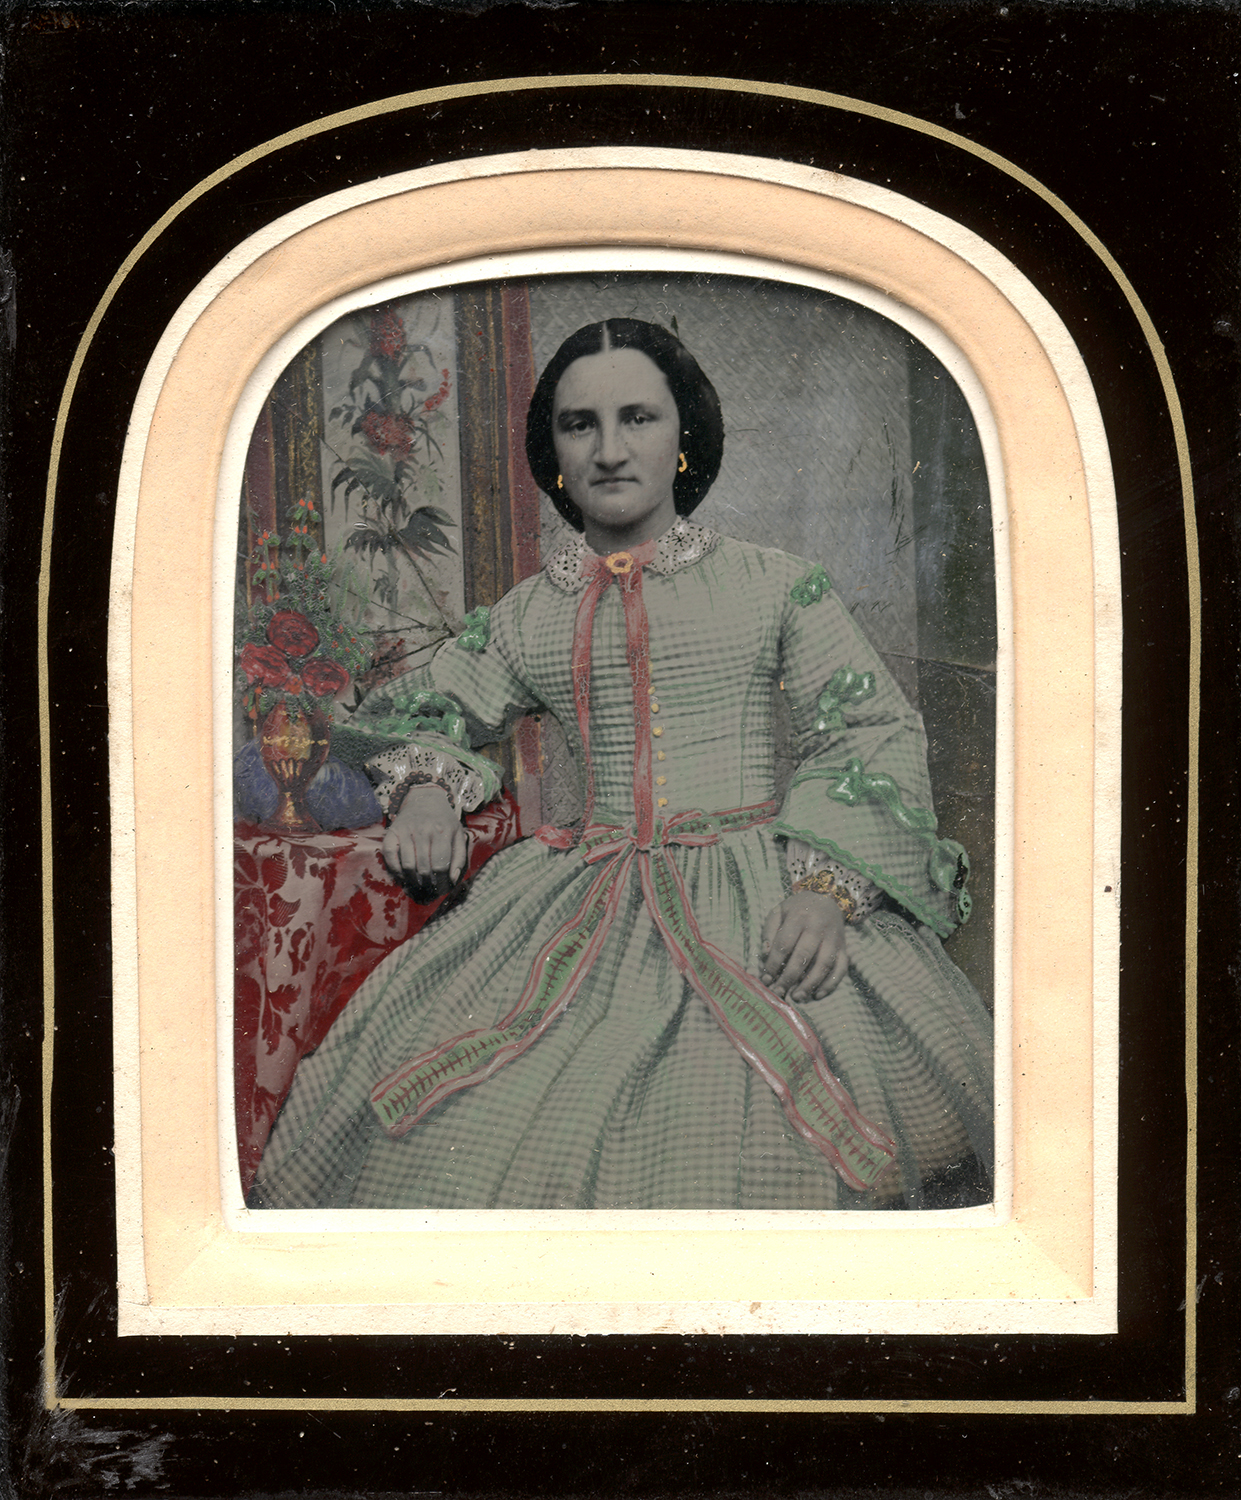 Portrait of a Seated Woman Resting her Arm on Round Table